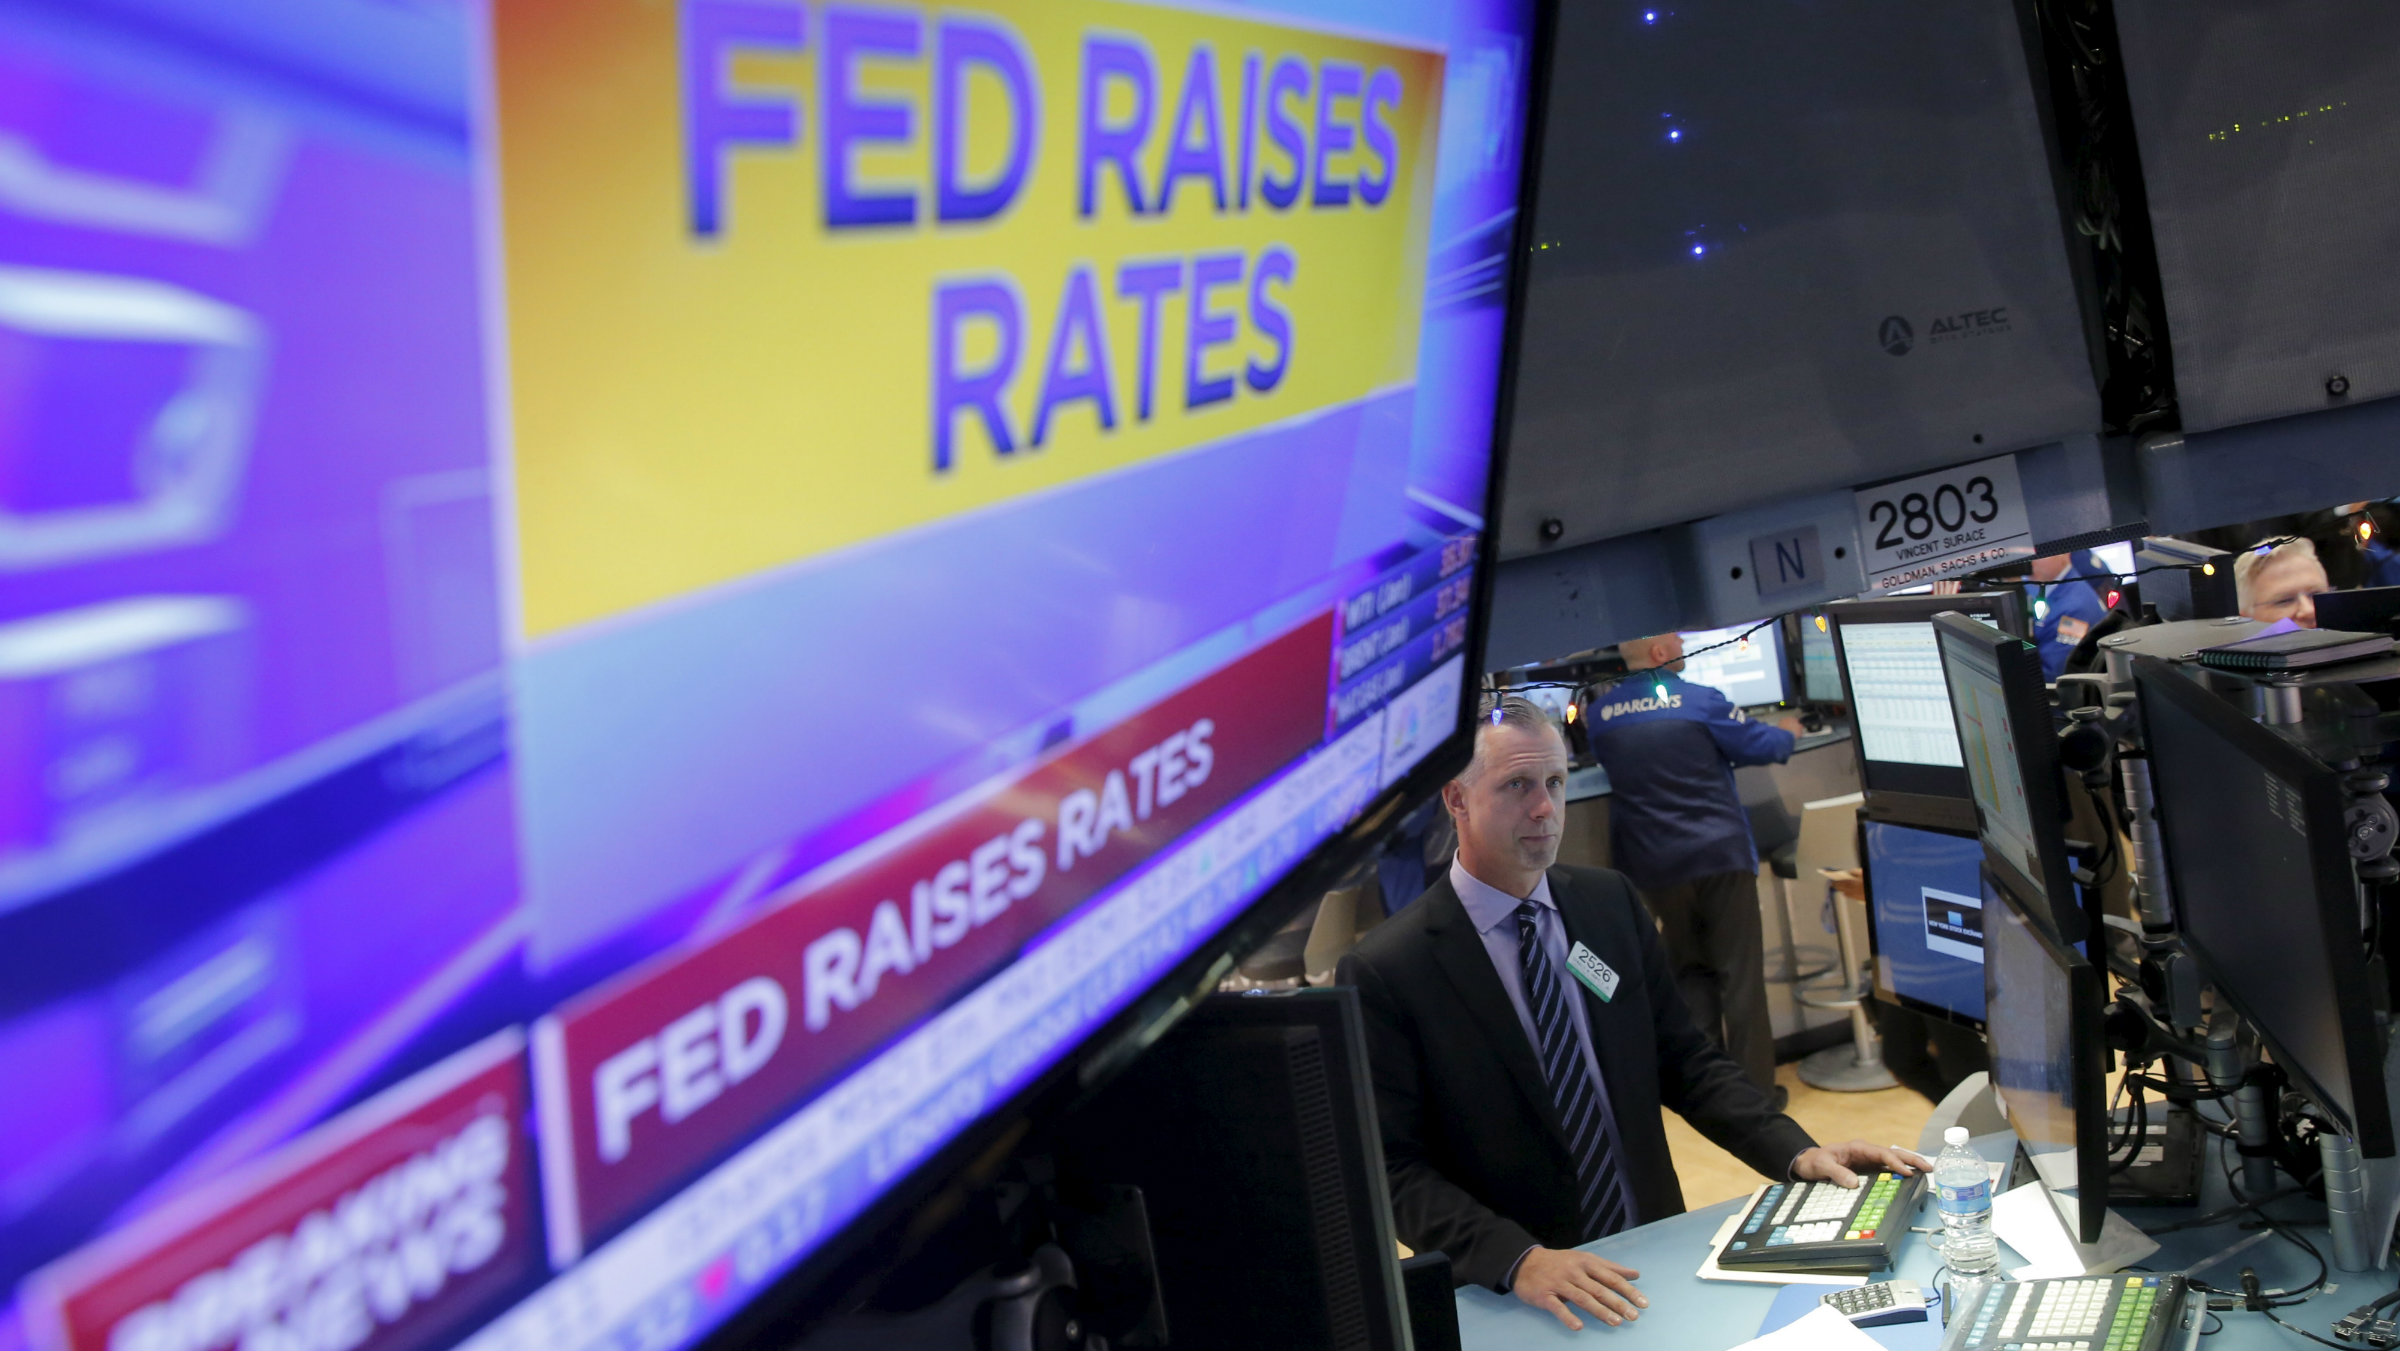 """TV showing chyron """"Fed raises rates"""" on a trading floor"""